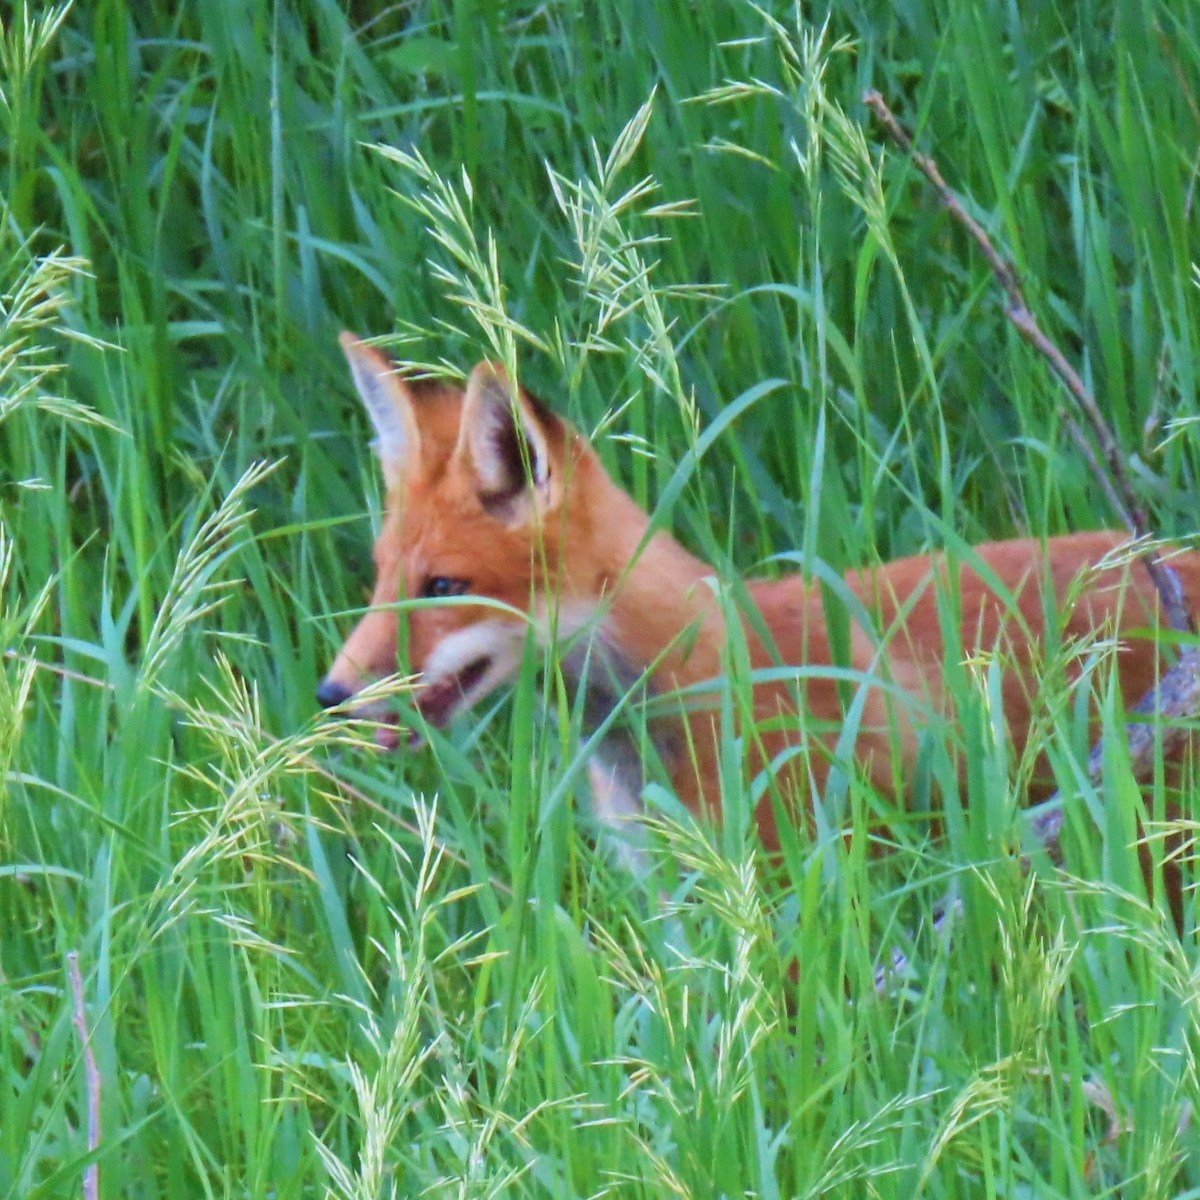 A red fox stands in tall grass